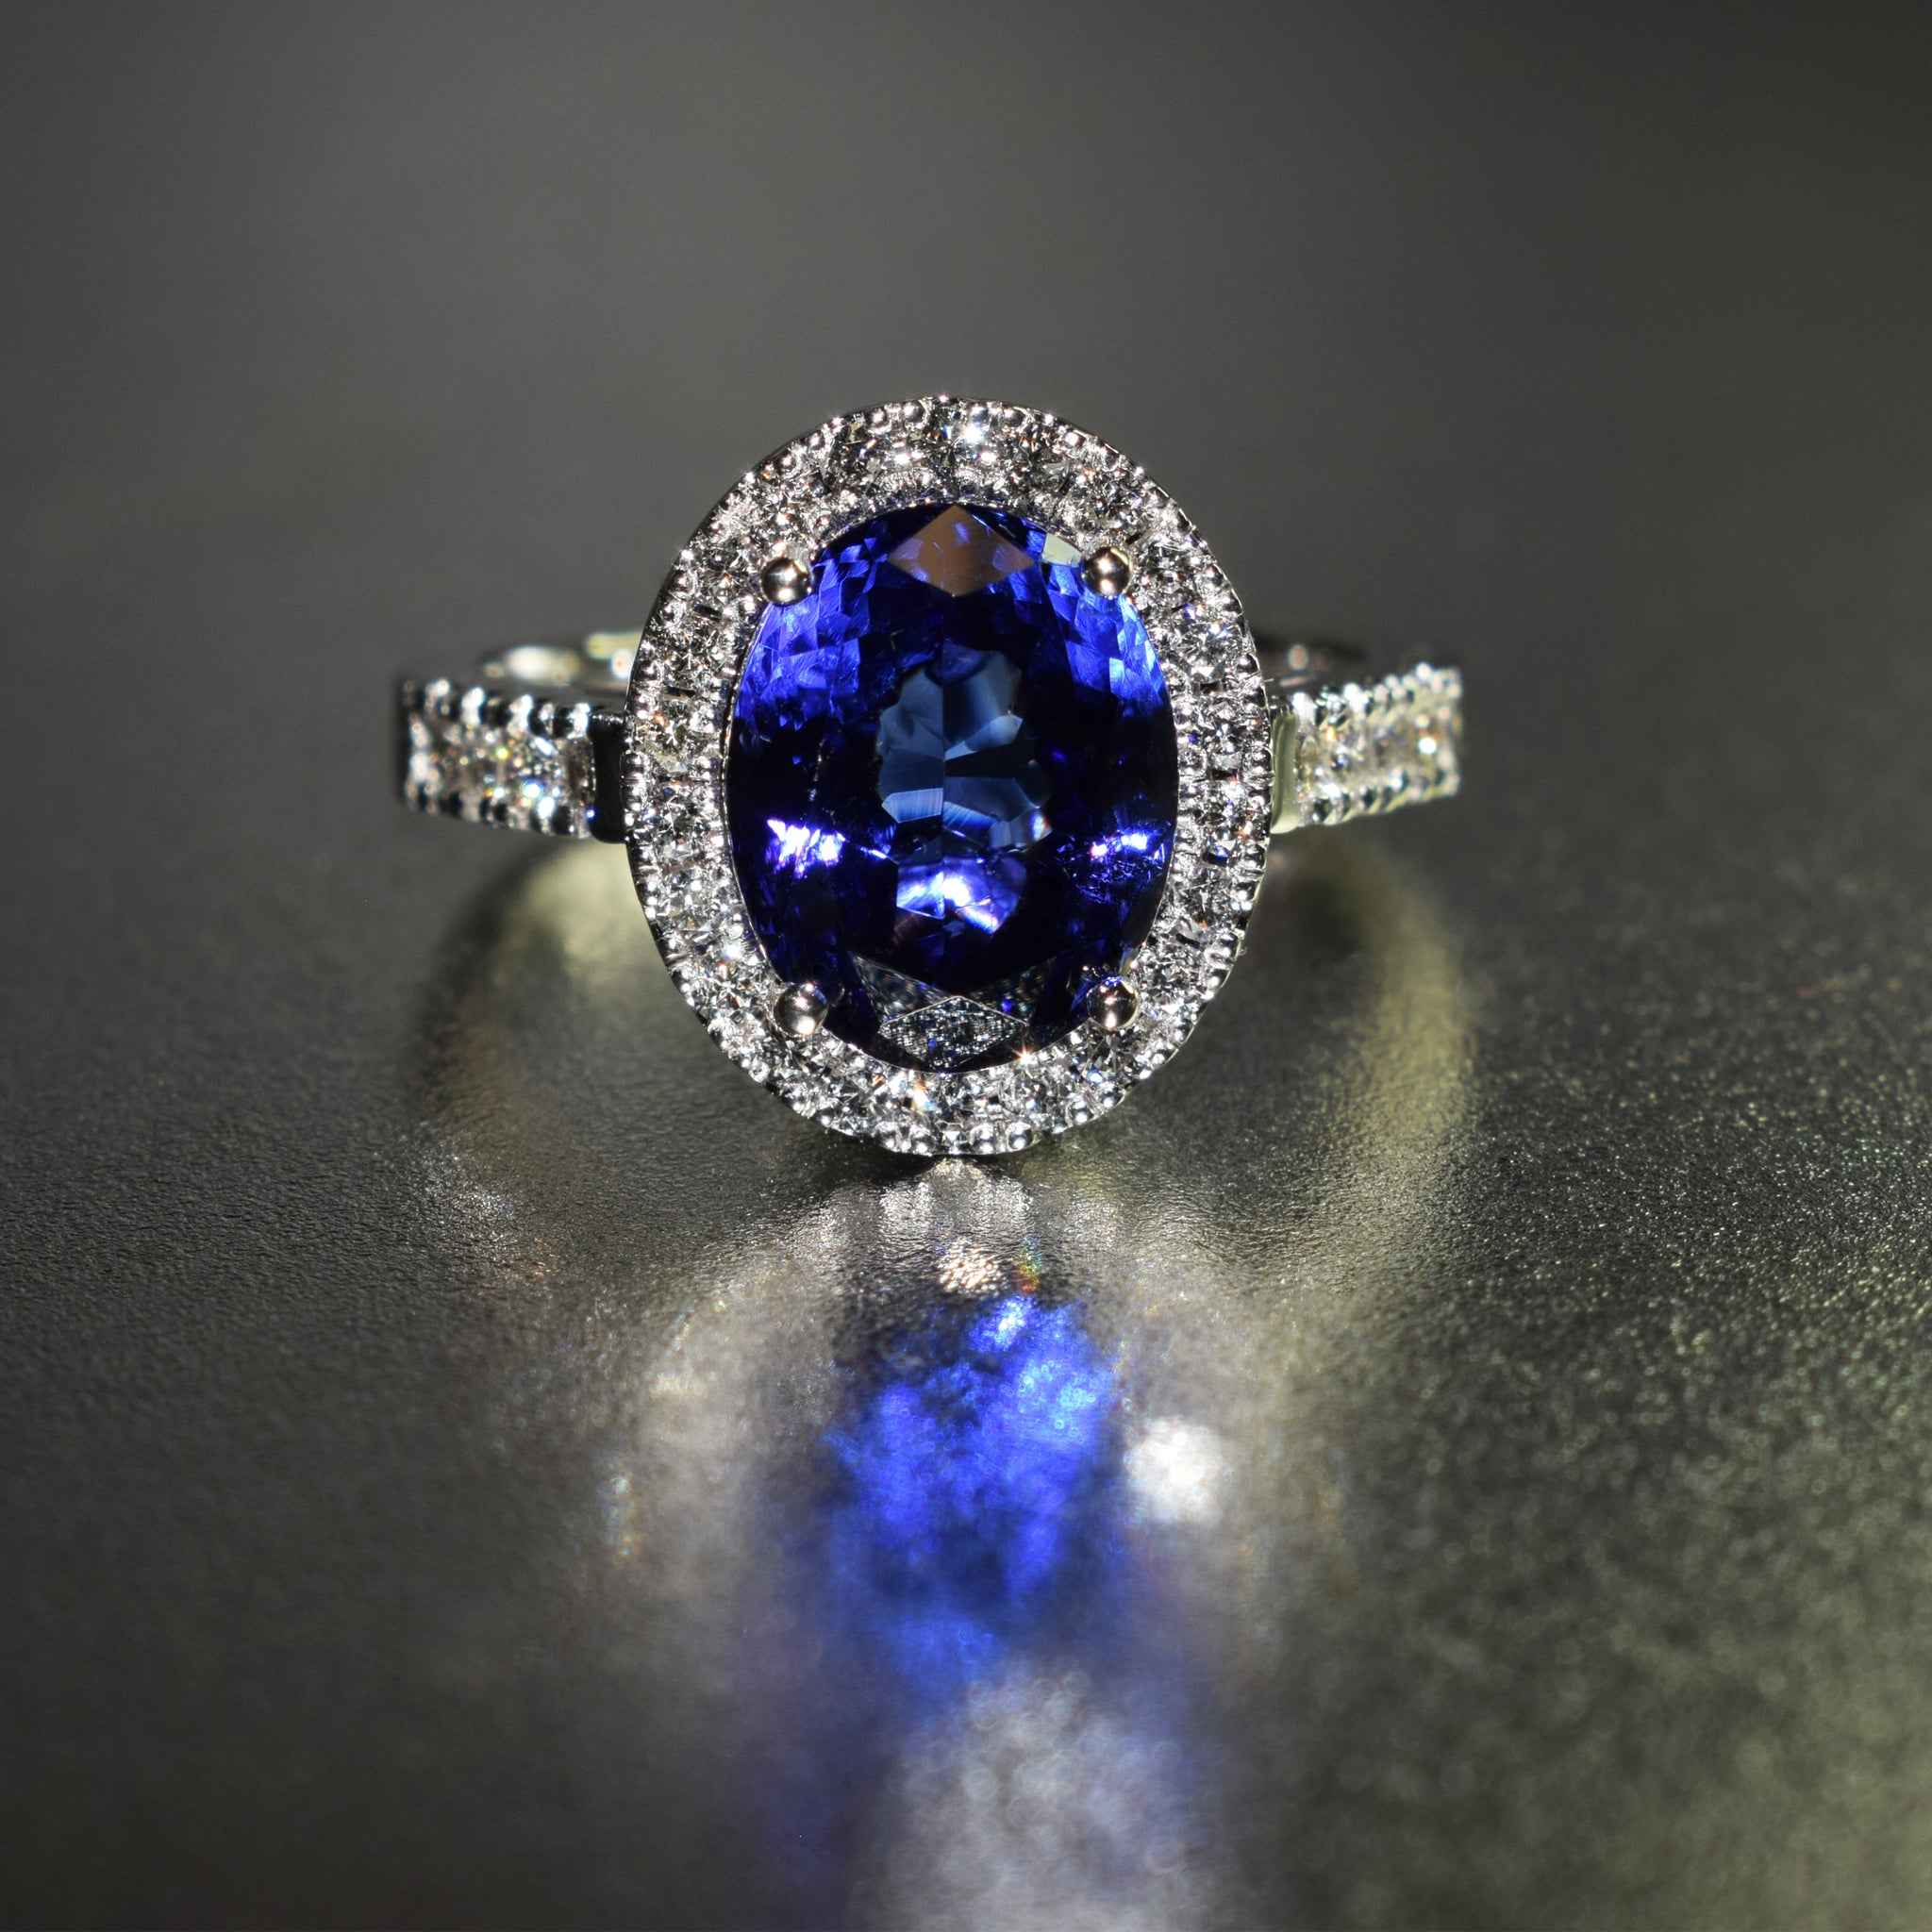 Oval tanzanite with diamond halo in 18K white gold